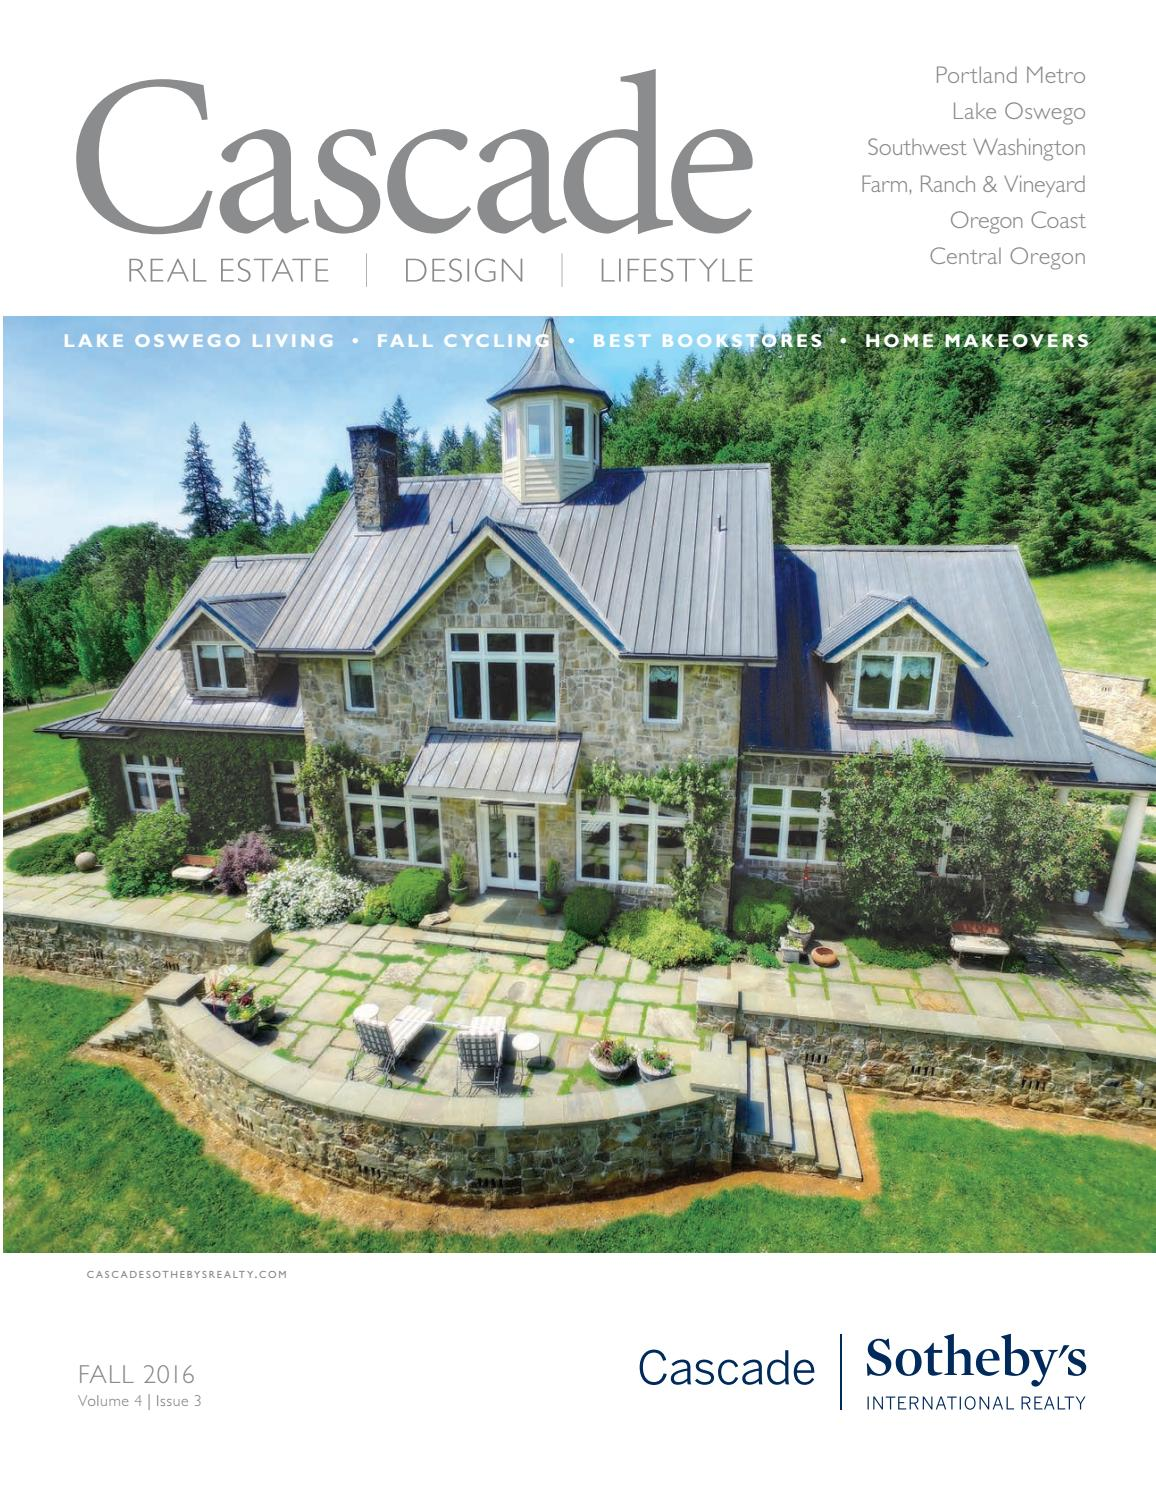 cascade magazine by cascade sotheby's international realty - issuu